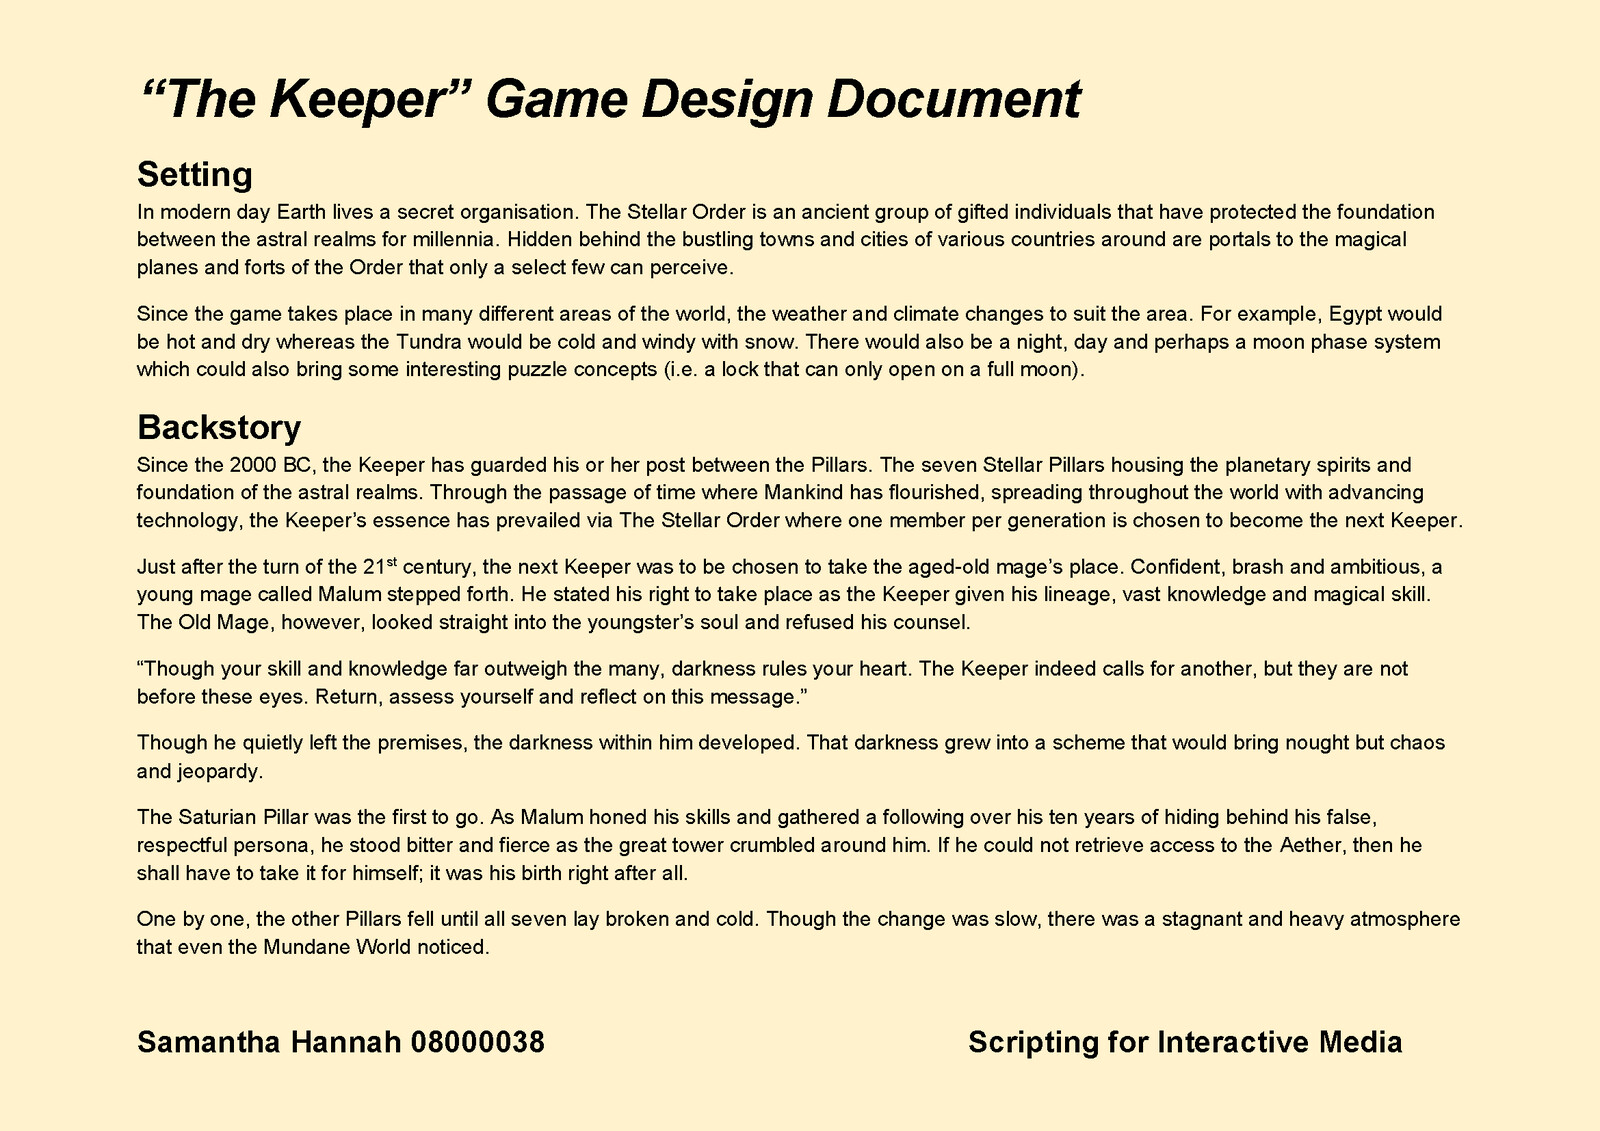 Game Design Document Page 3